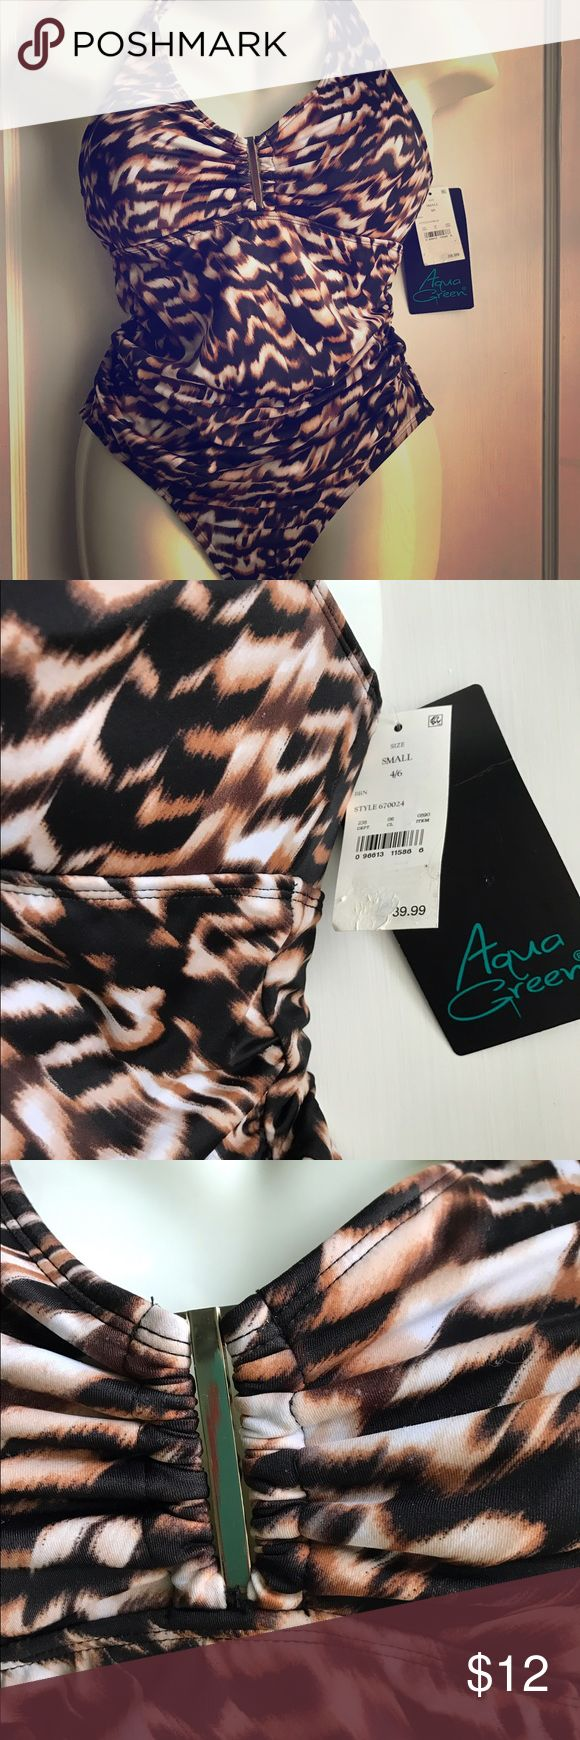 NWT Animal print one-piece swimsuit New with original tags animal print swimsuit.  Has rouching on sides for a flattering middle.  Ties at neck, several sizes available. Aqua Green Swim One Pieces